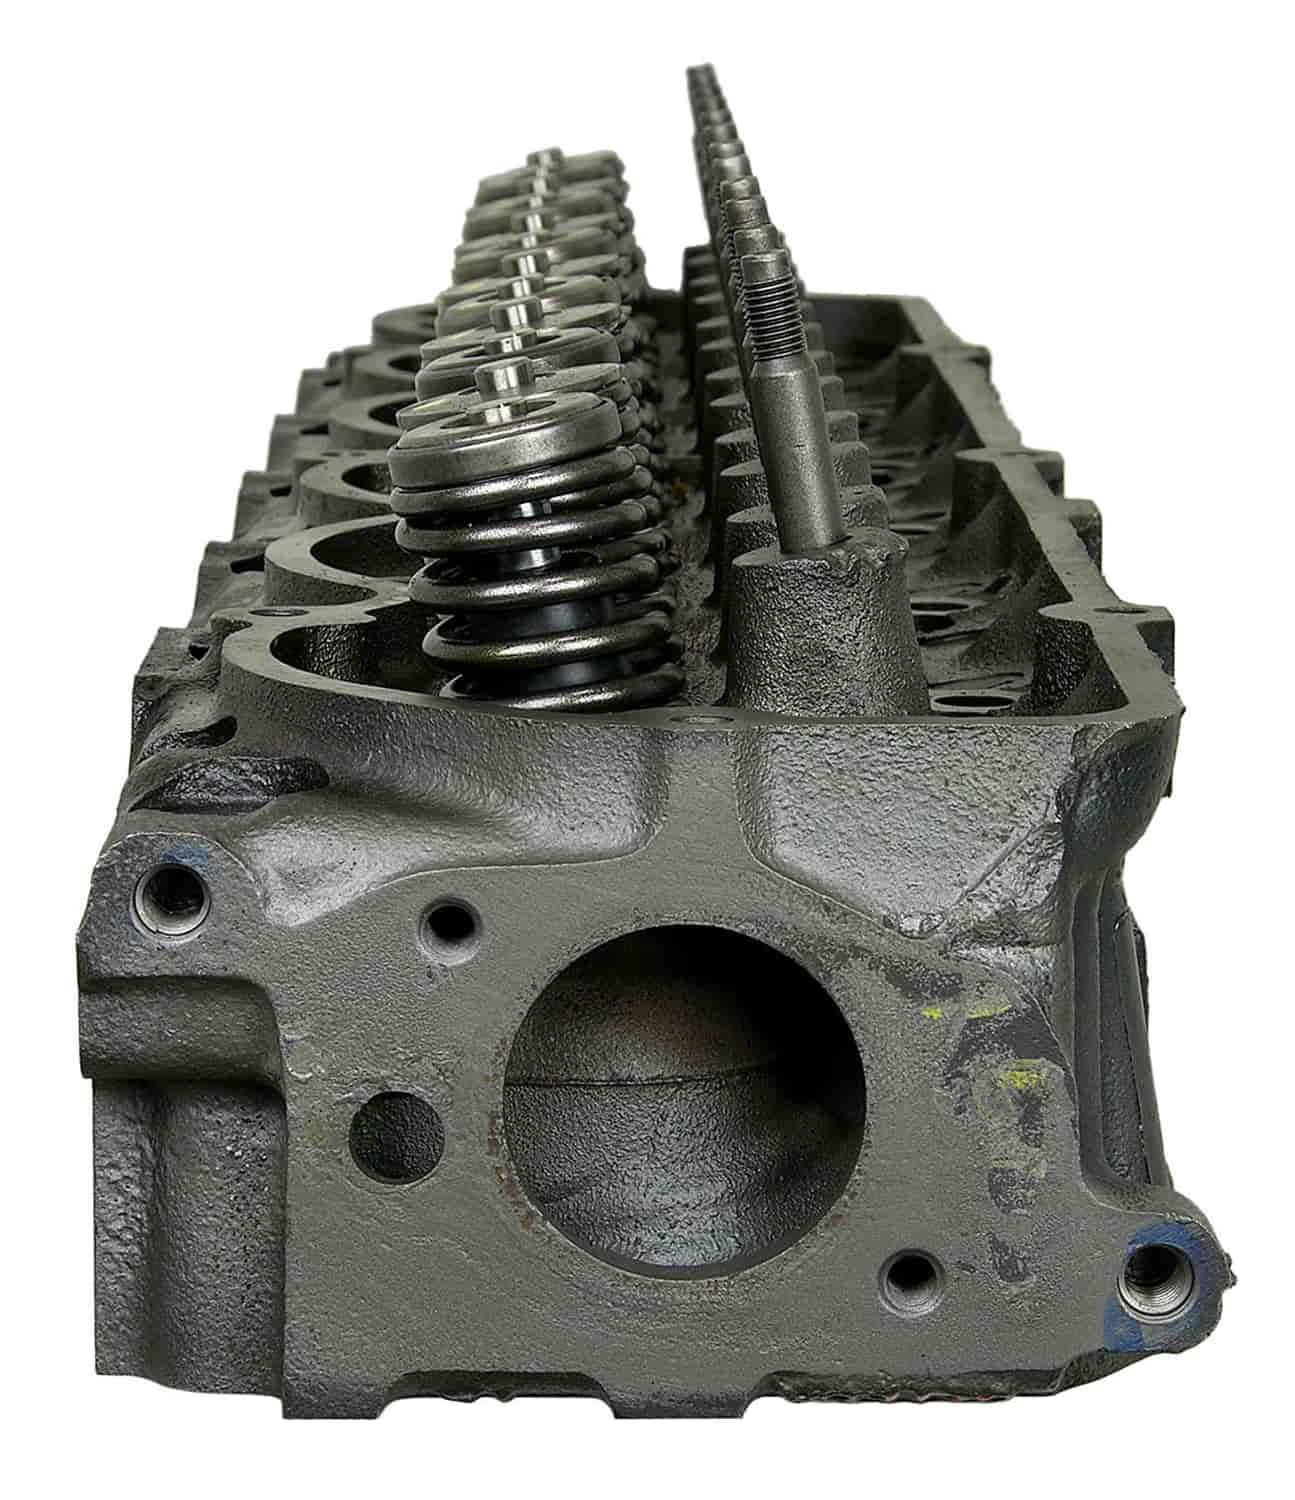 Atk Engines 2f09  Remanufactured Cylinder Head For 1965